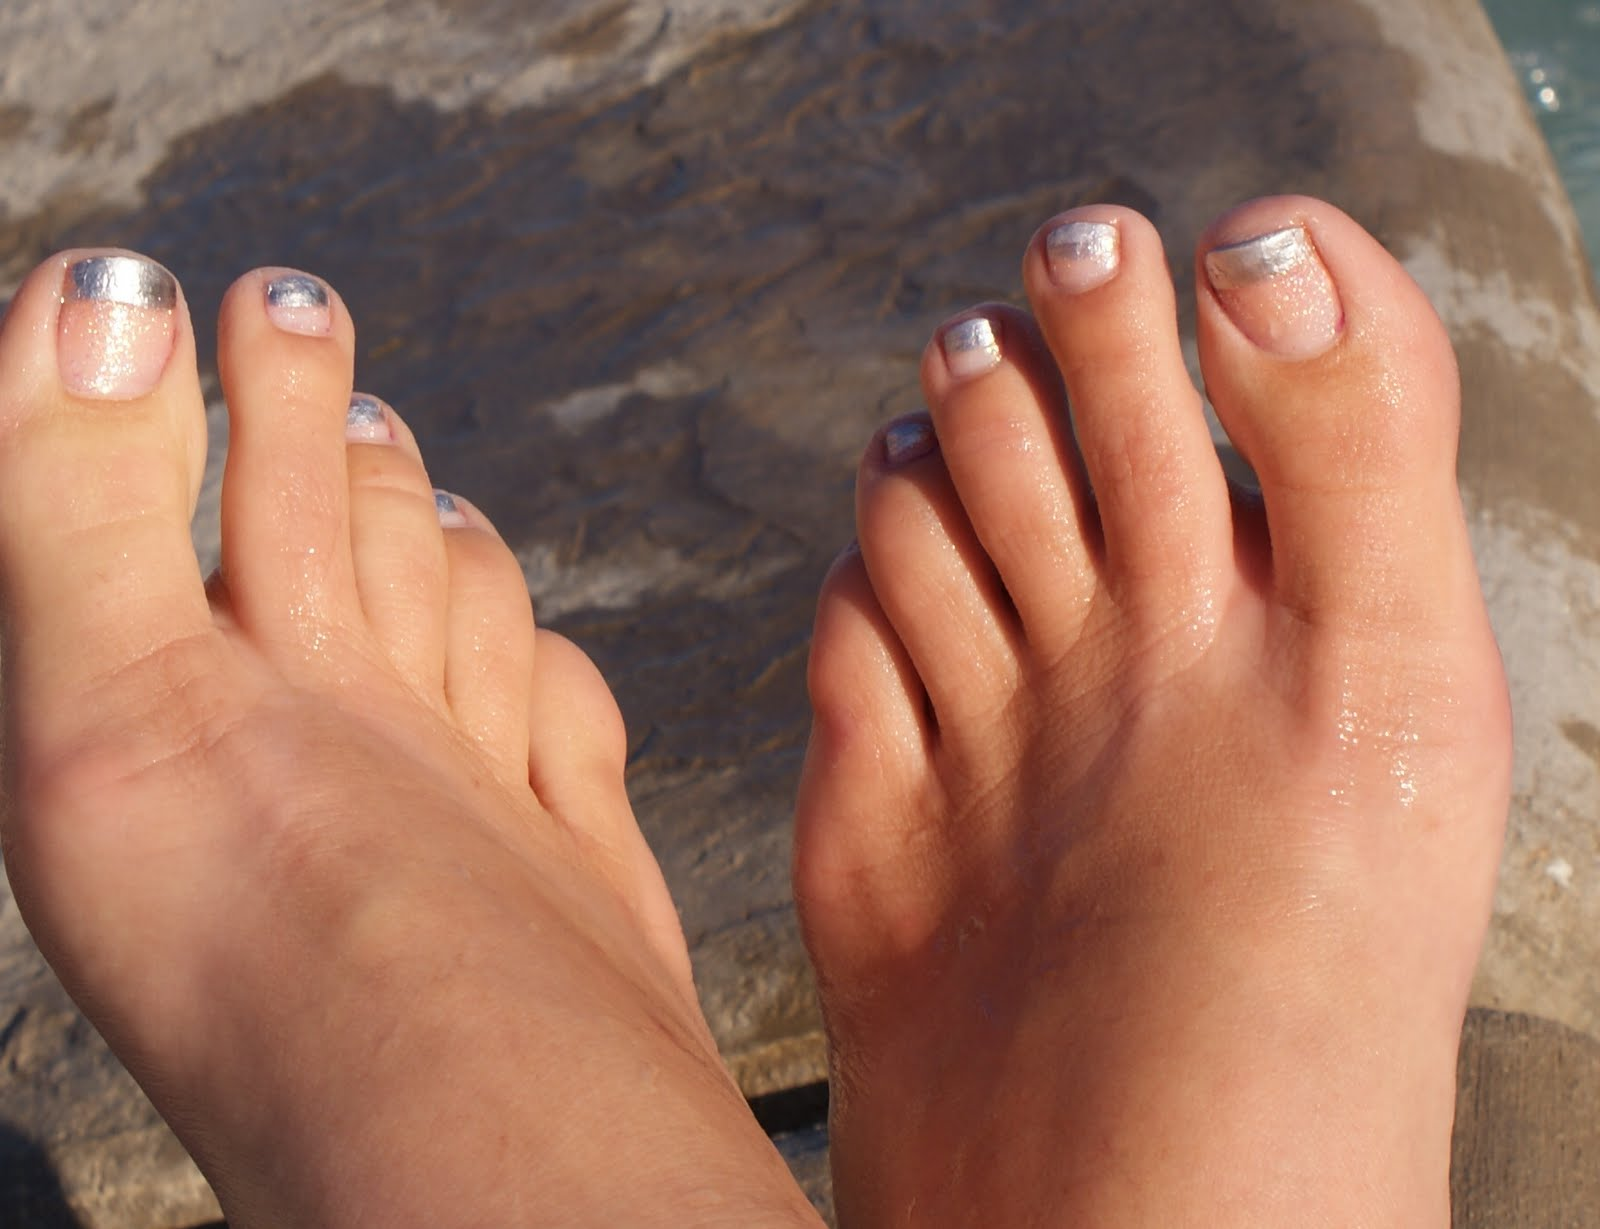 Dating site photos tips and toes